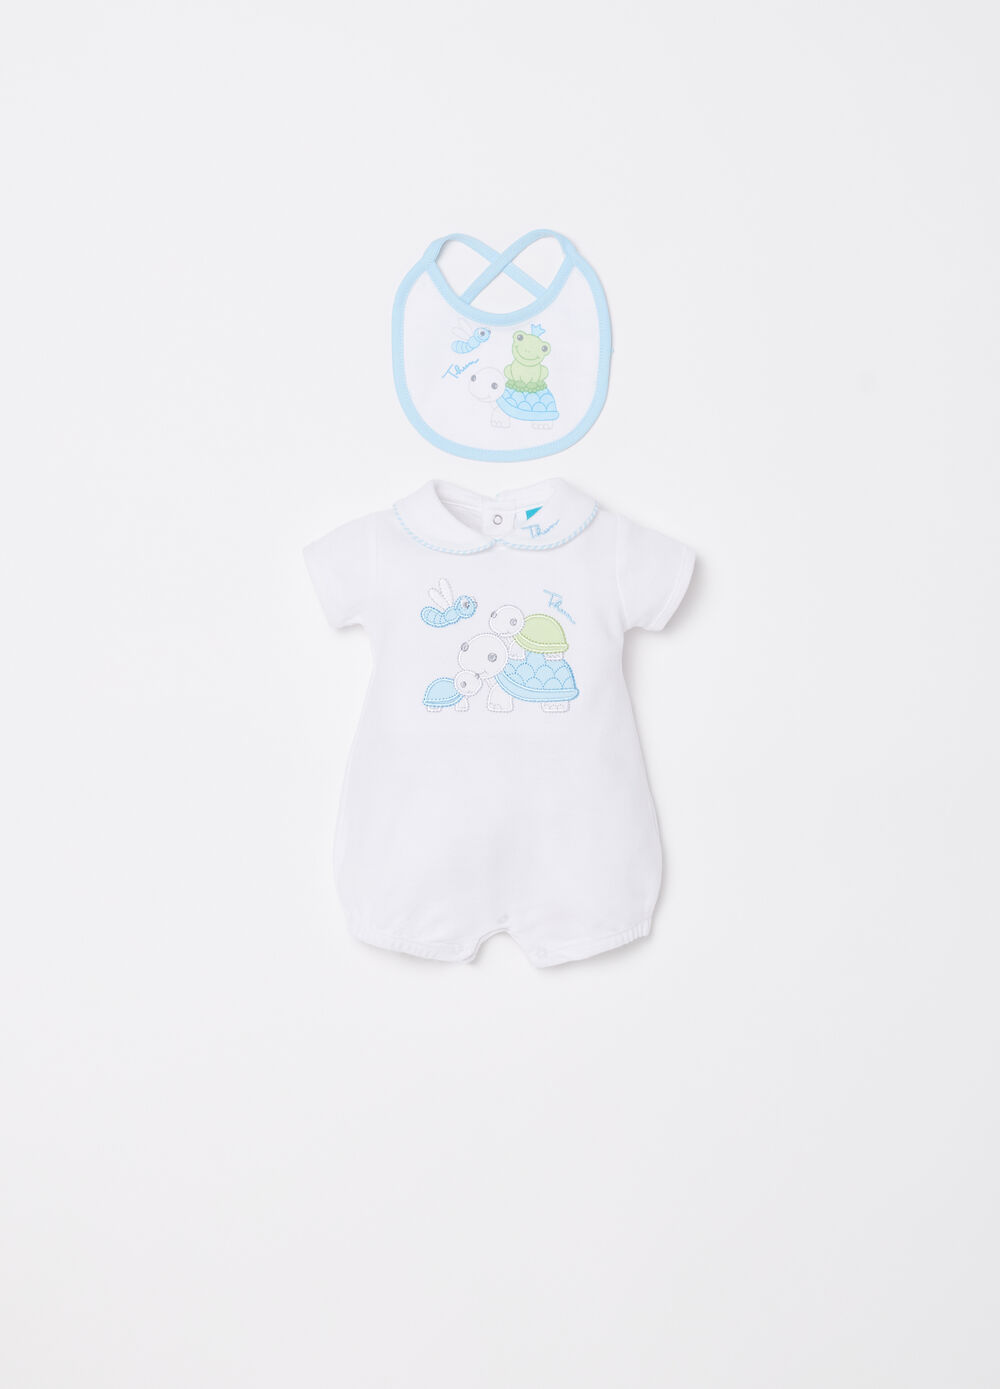 THUN short onesie and bib set